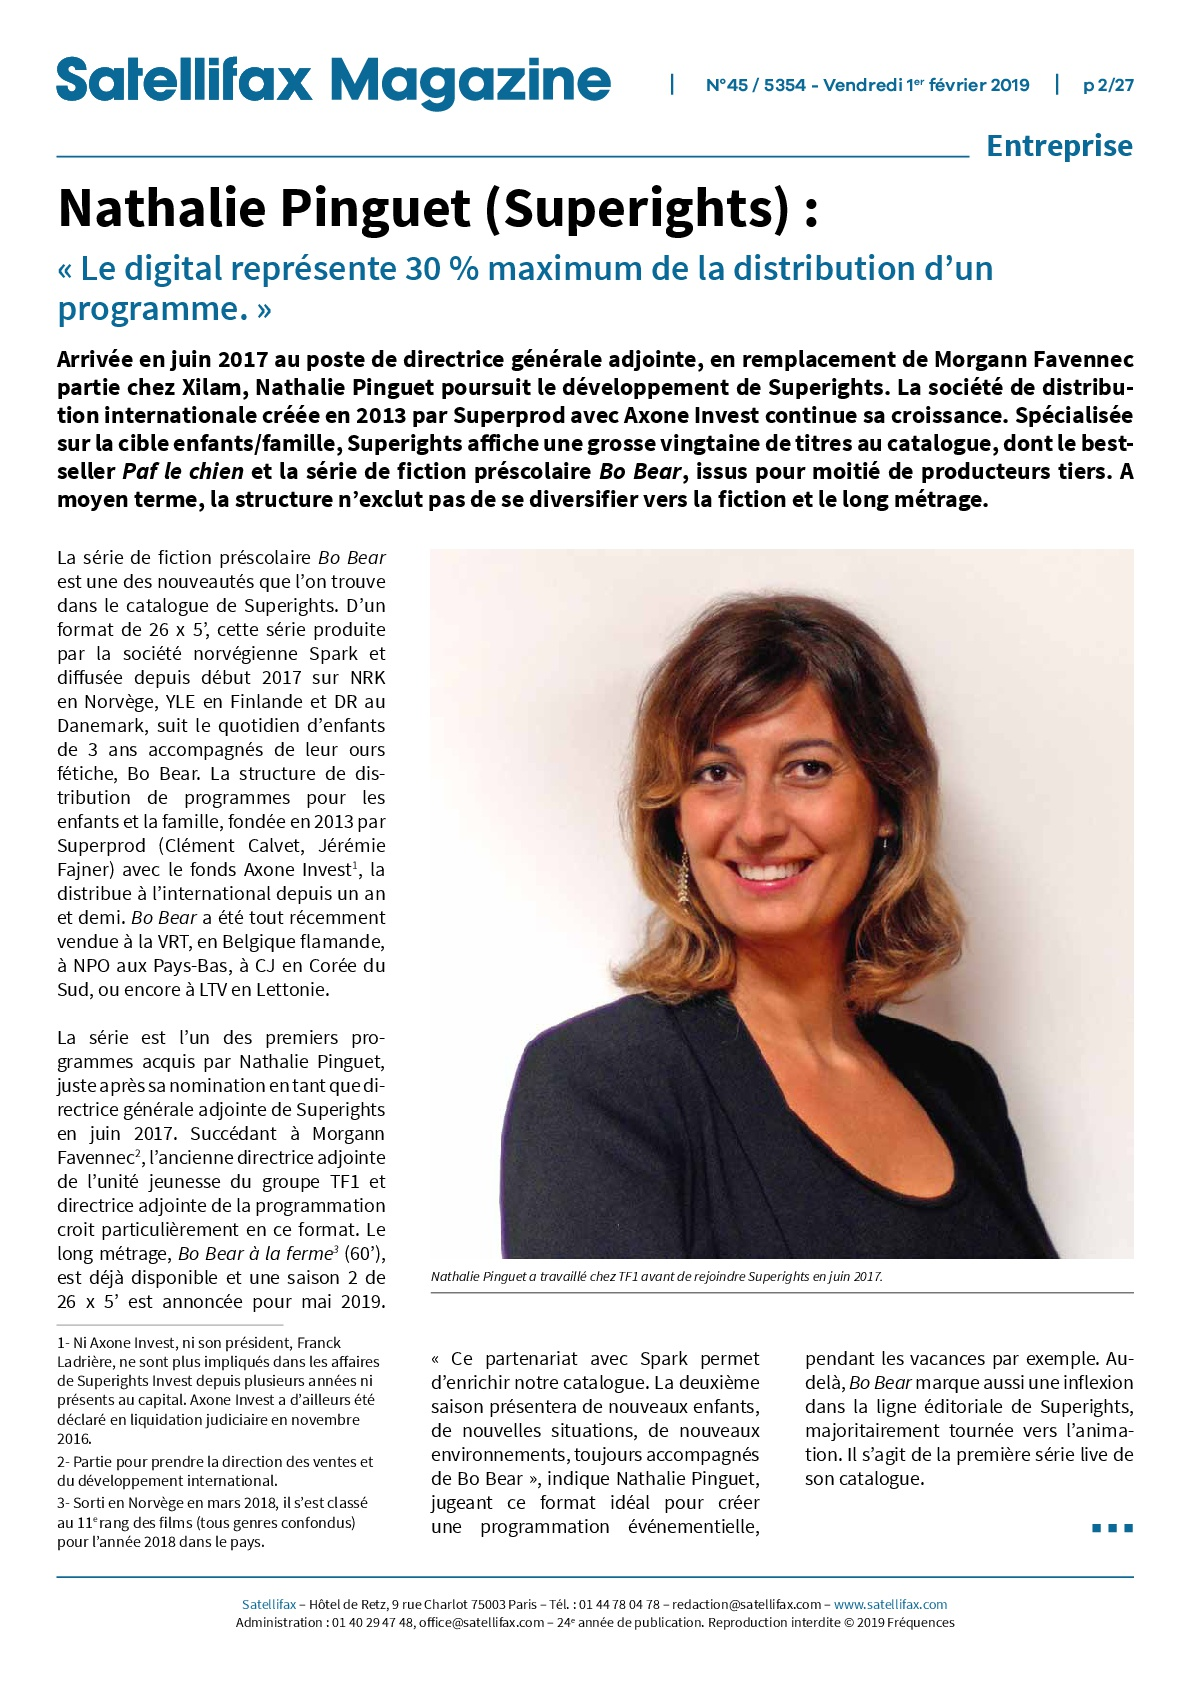 Satellifax Magazine – Interview Nathalie Pinguet